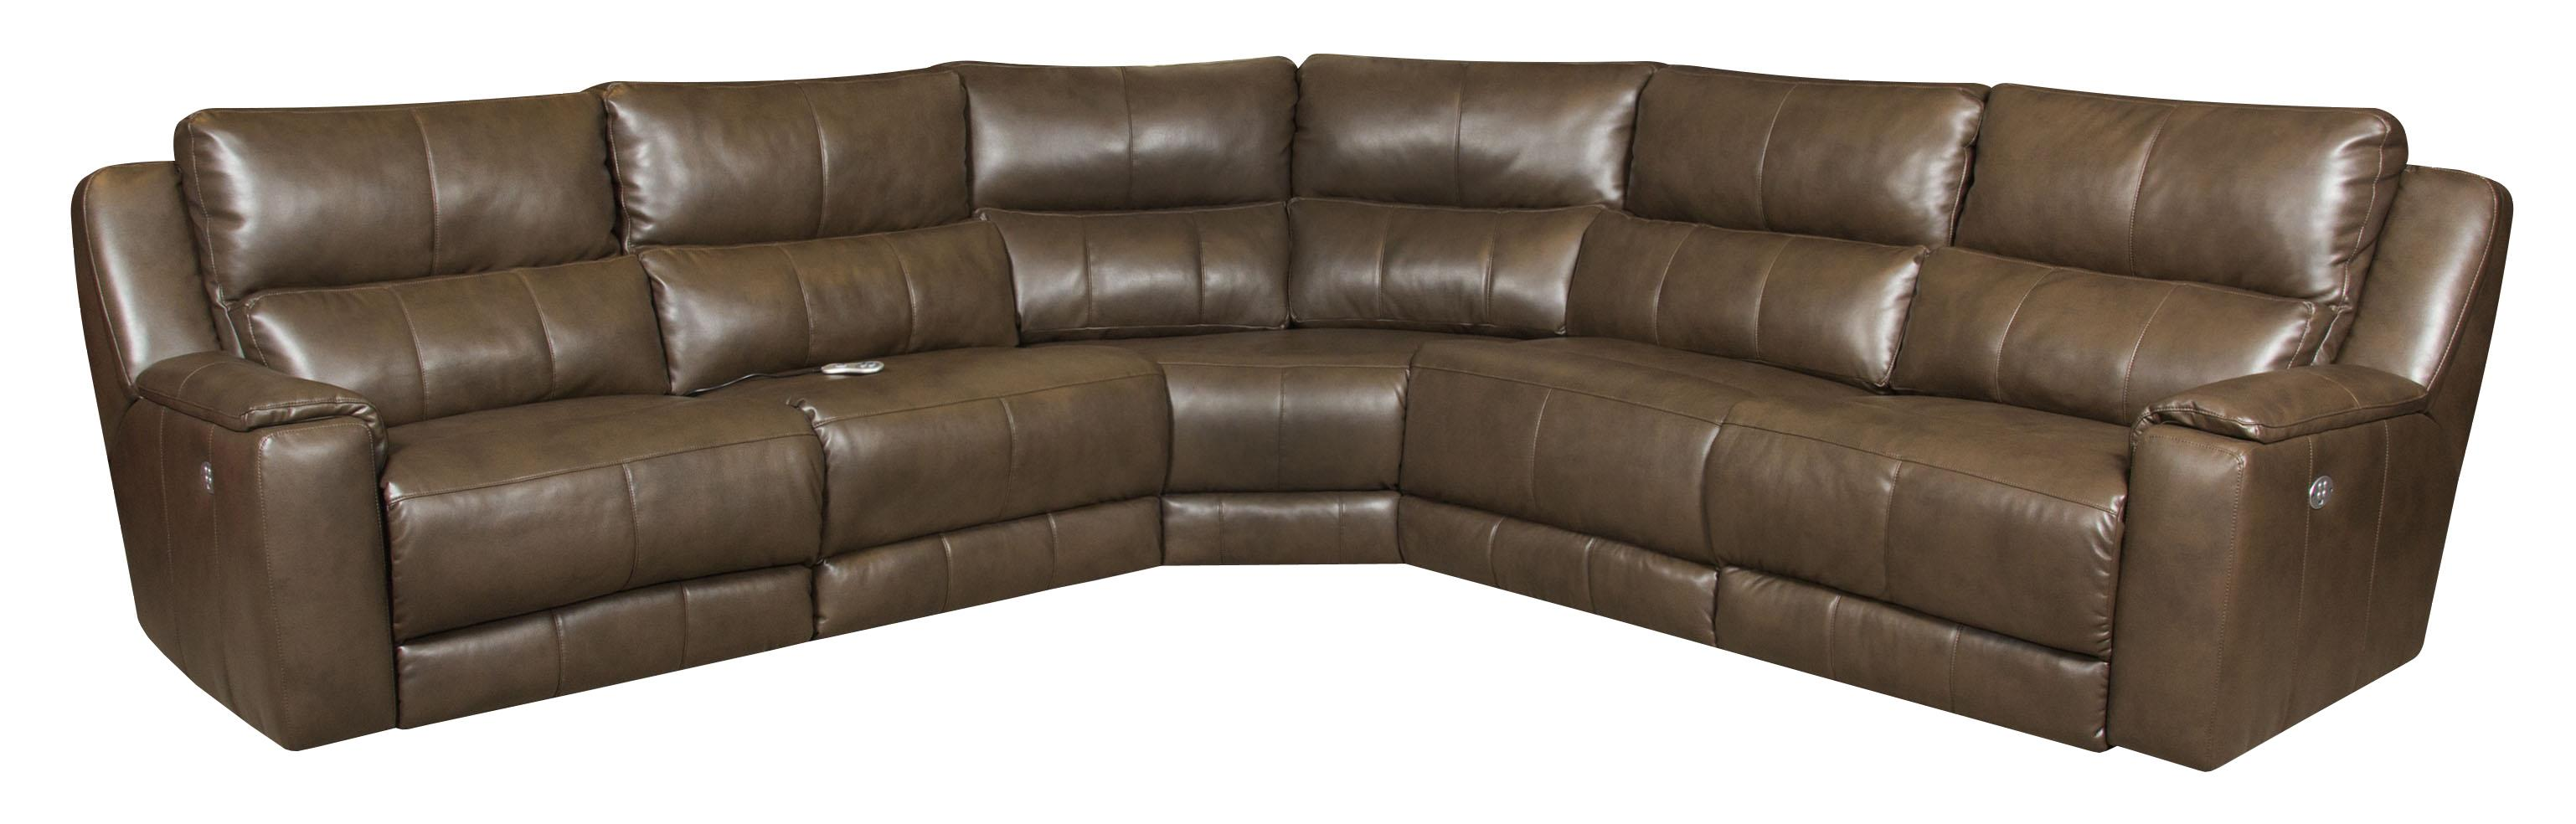 By Southern Motion. Reclining Sectional Sofa With 5 Seats And Power  Headrests